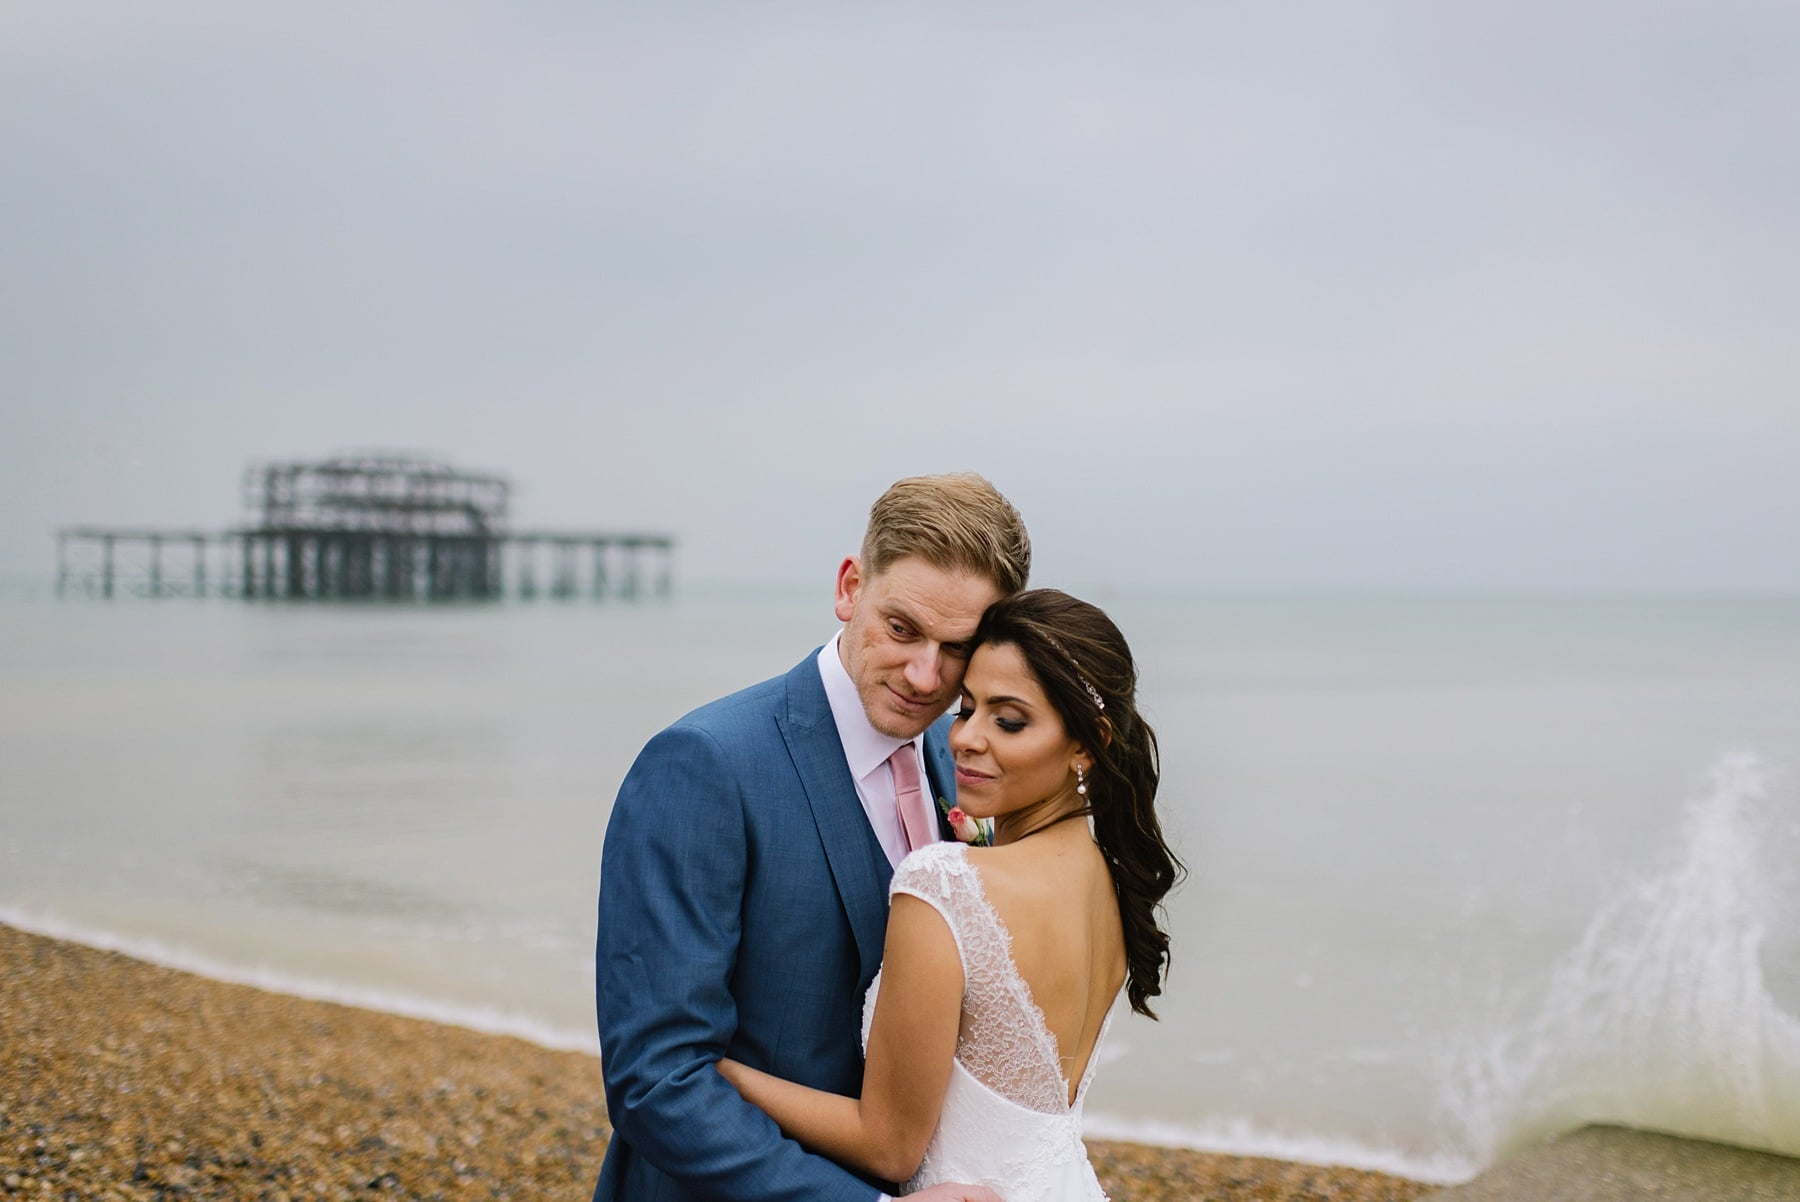 Brighton Wedding, alternative wedding photographer brighton